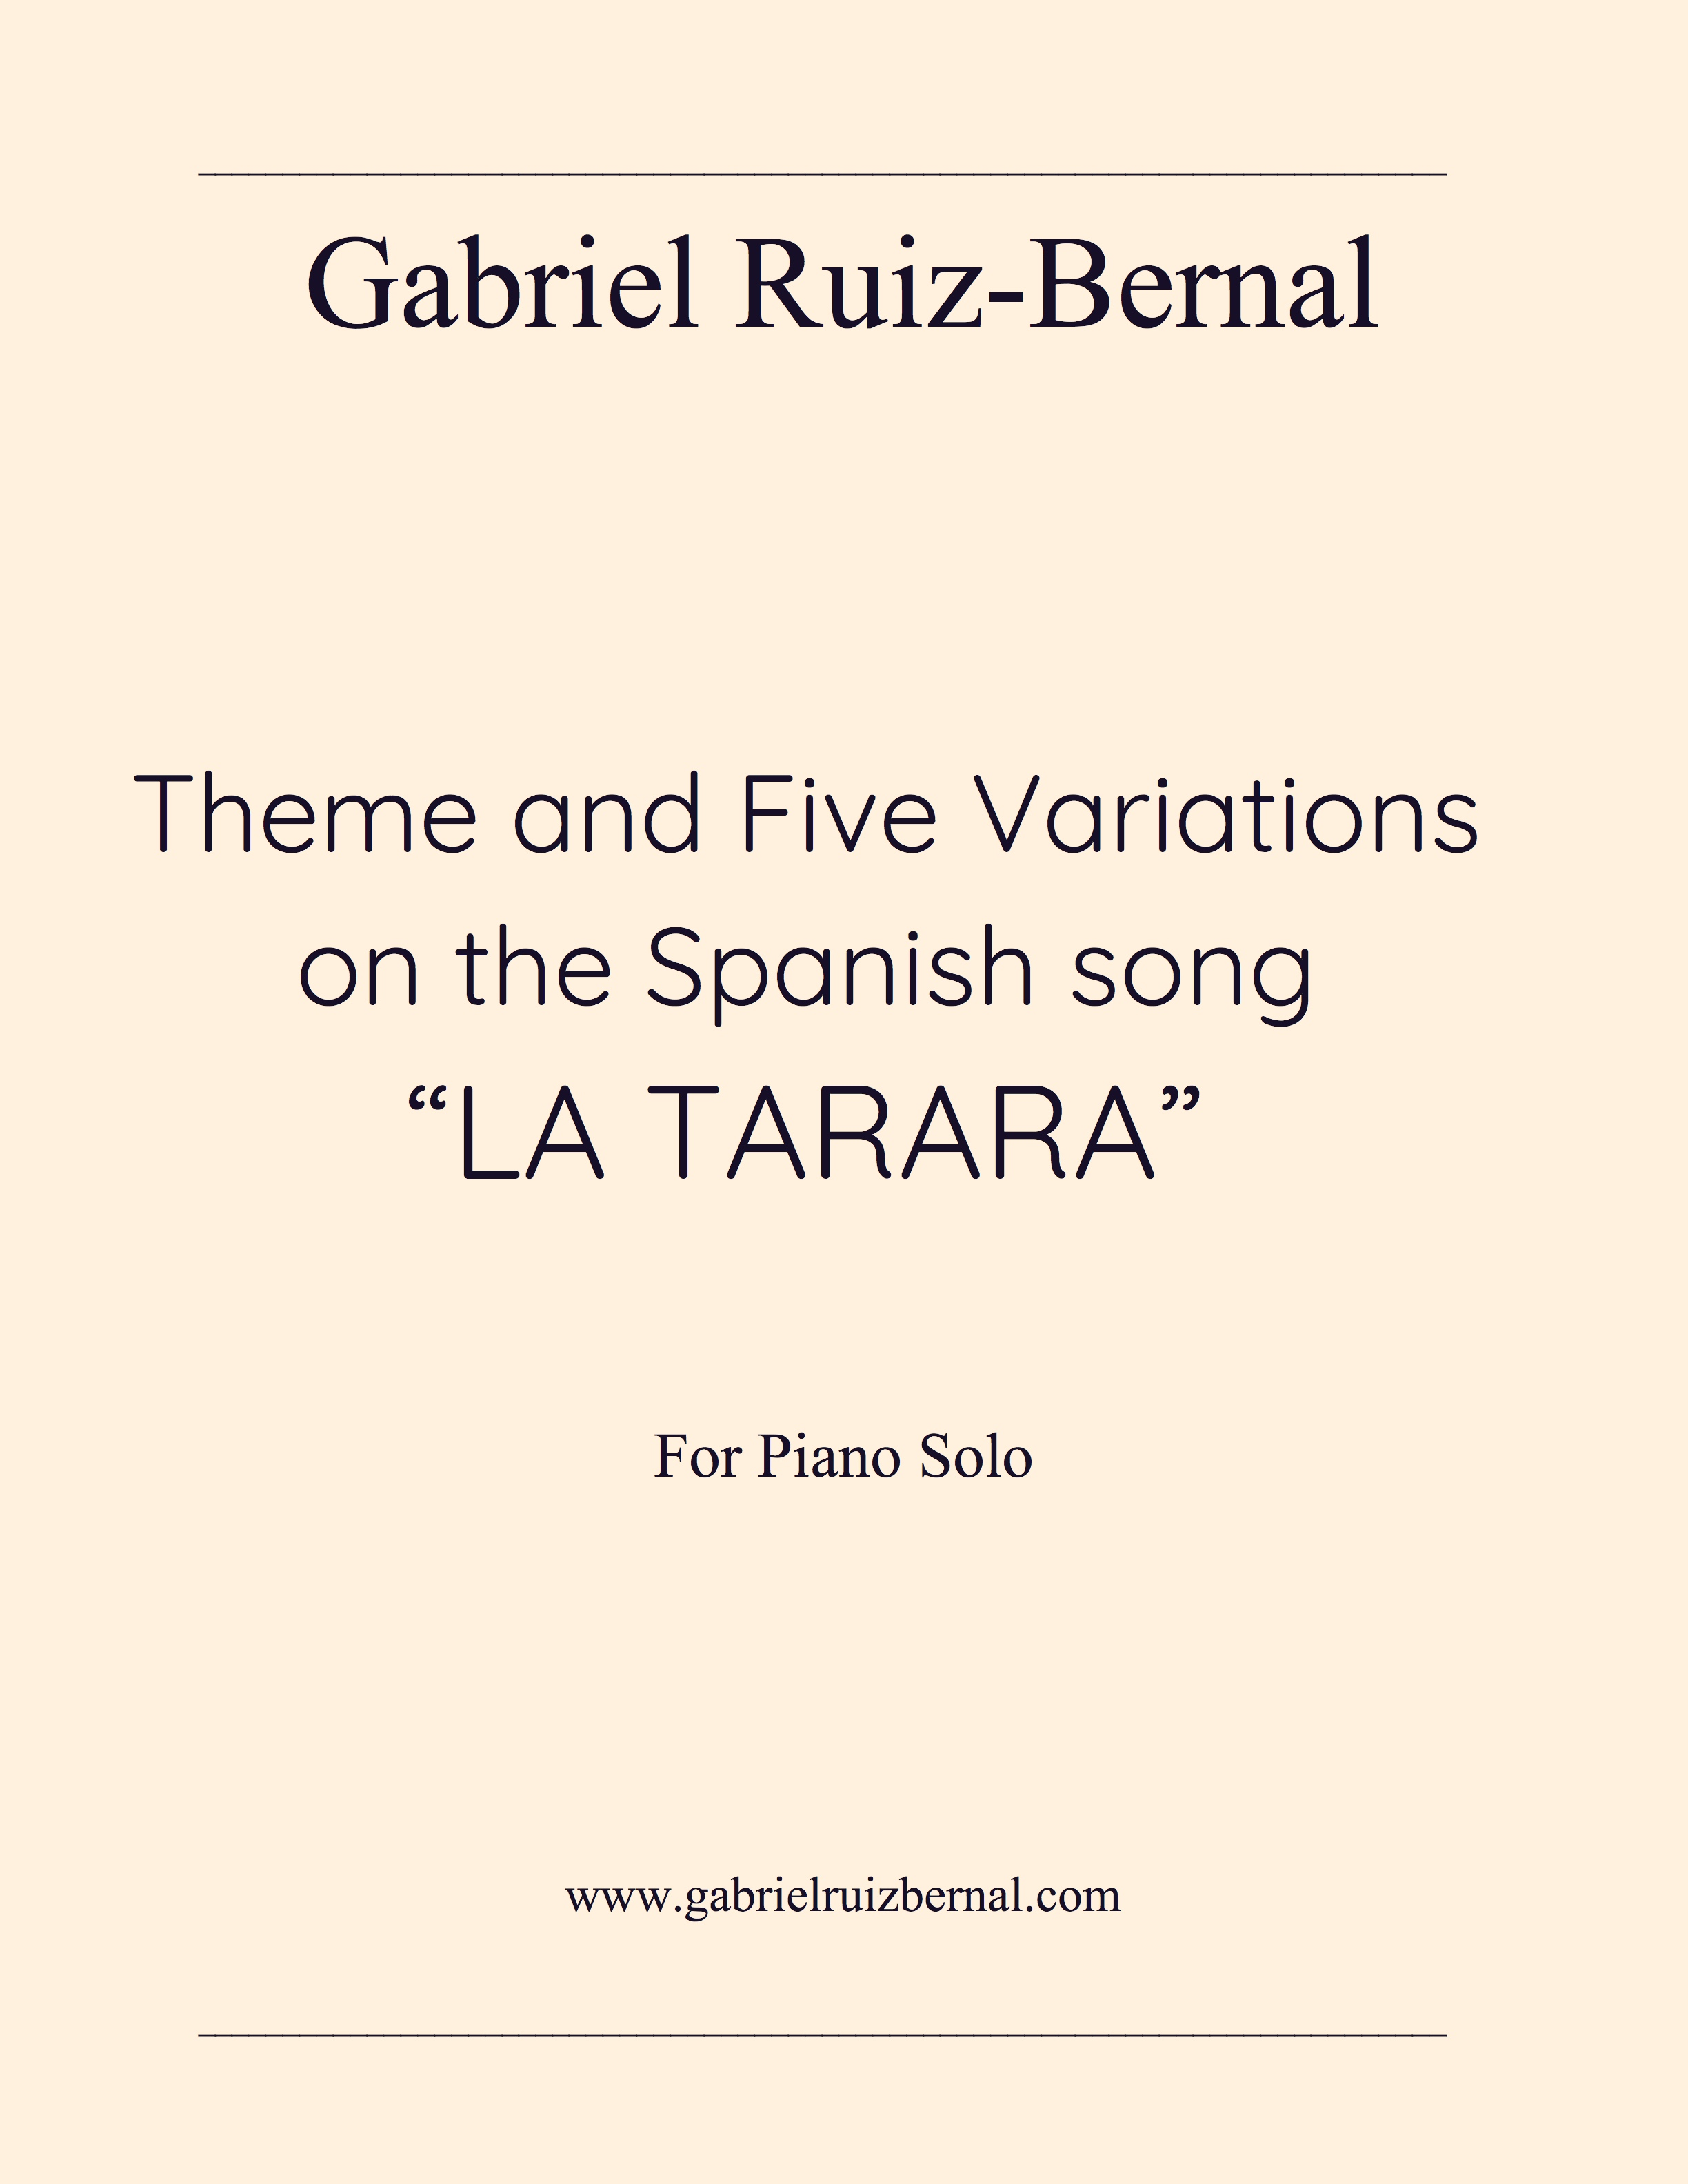 "7 Years Piano Pdf theme and five variations on the spanish song ""la tarara"" for solo piano.  pdf download."